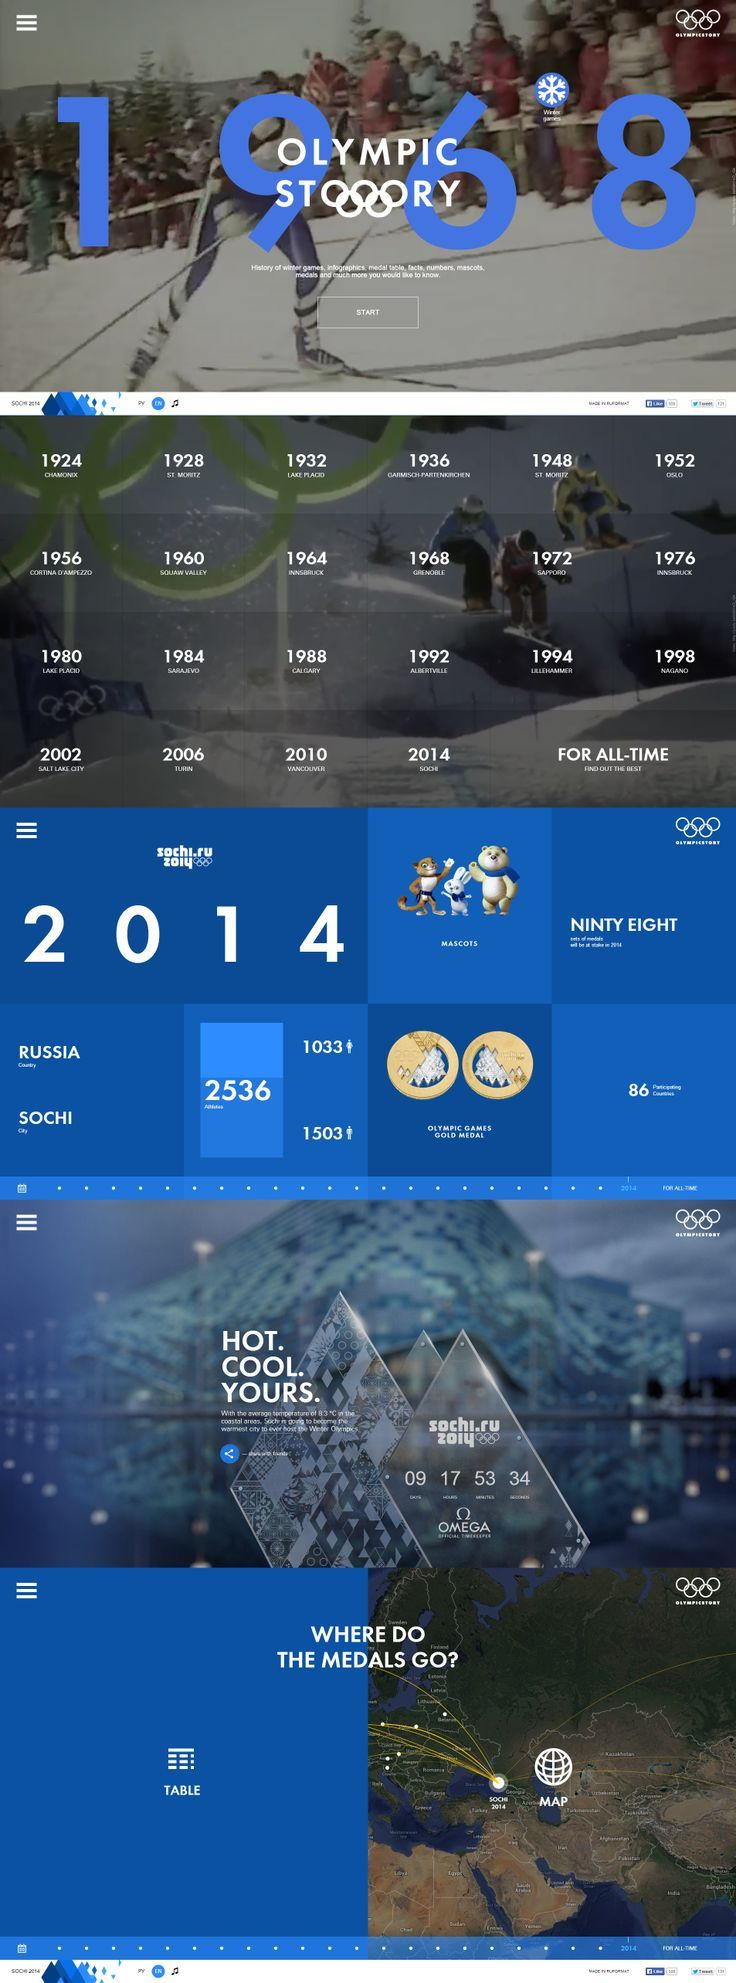 Olympic Story By ruformat from RUSSIA #webdesign... One of the best designs and UX that i have seen before.